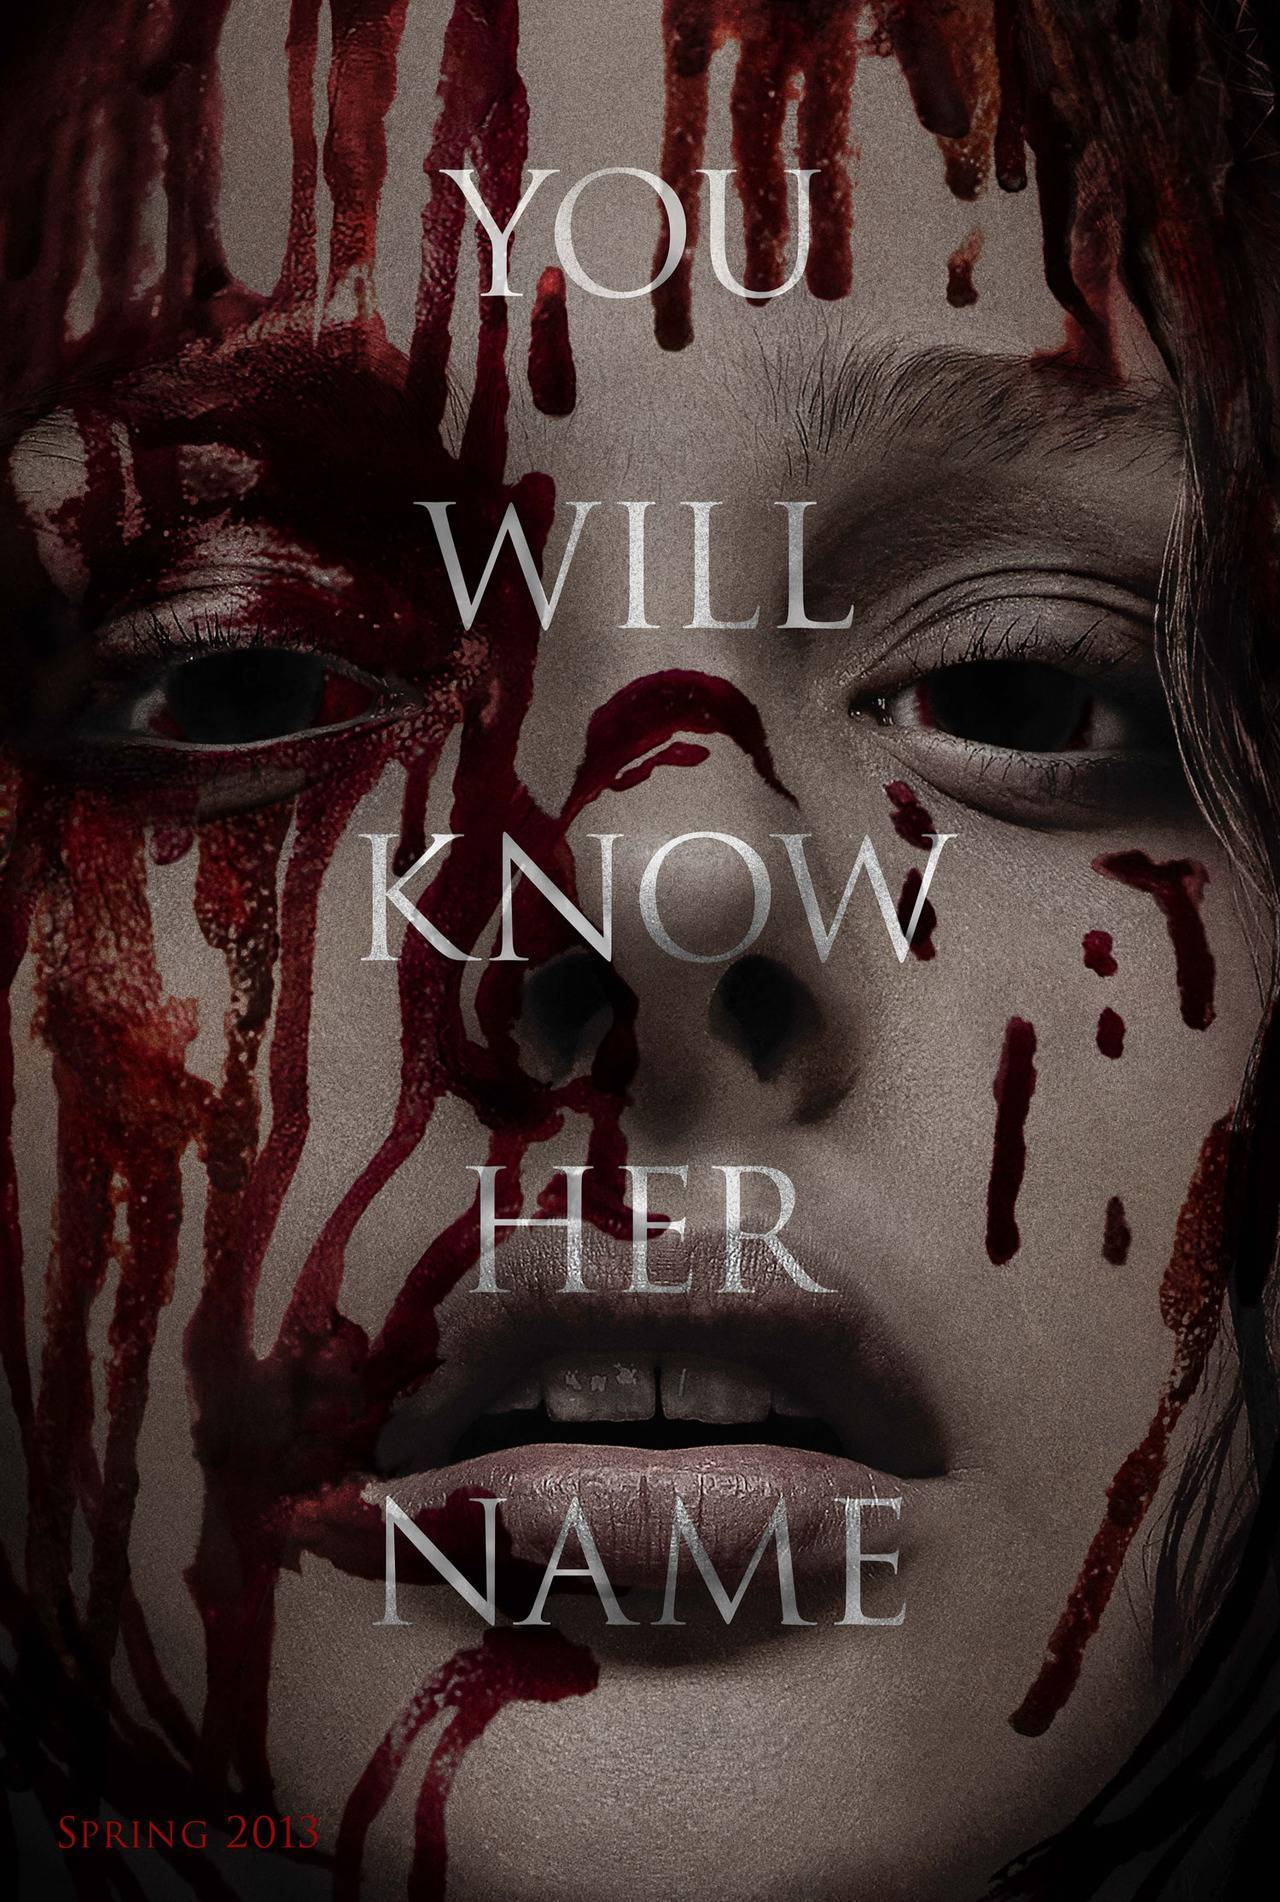 Teaser poster for Carrie remake starring Chloe Moretz